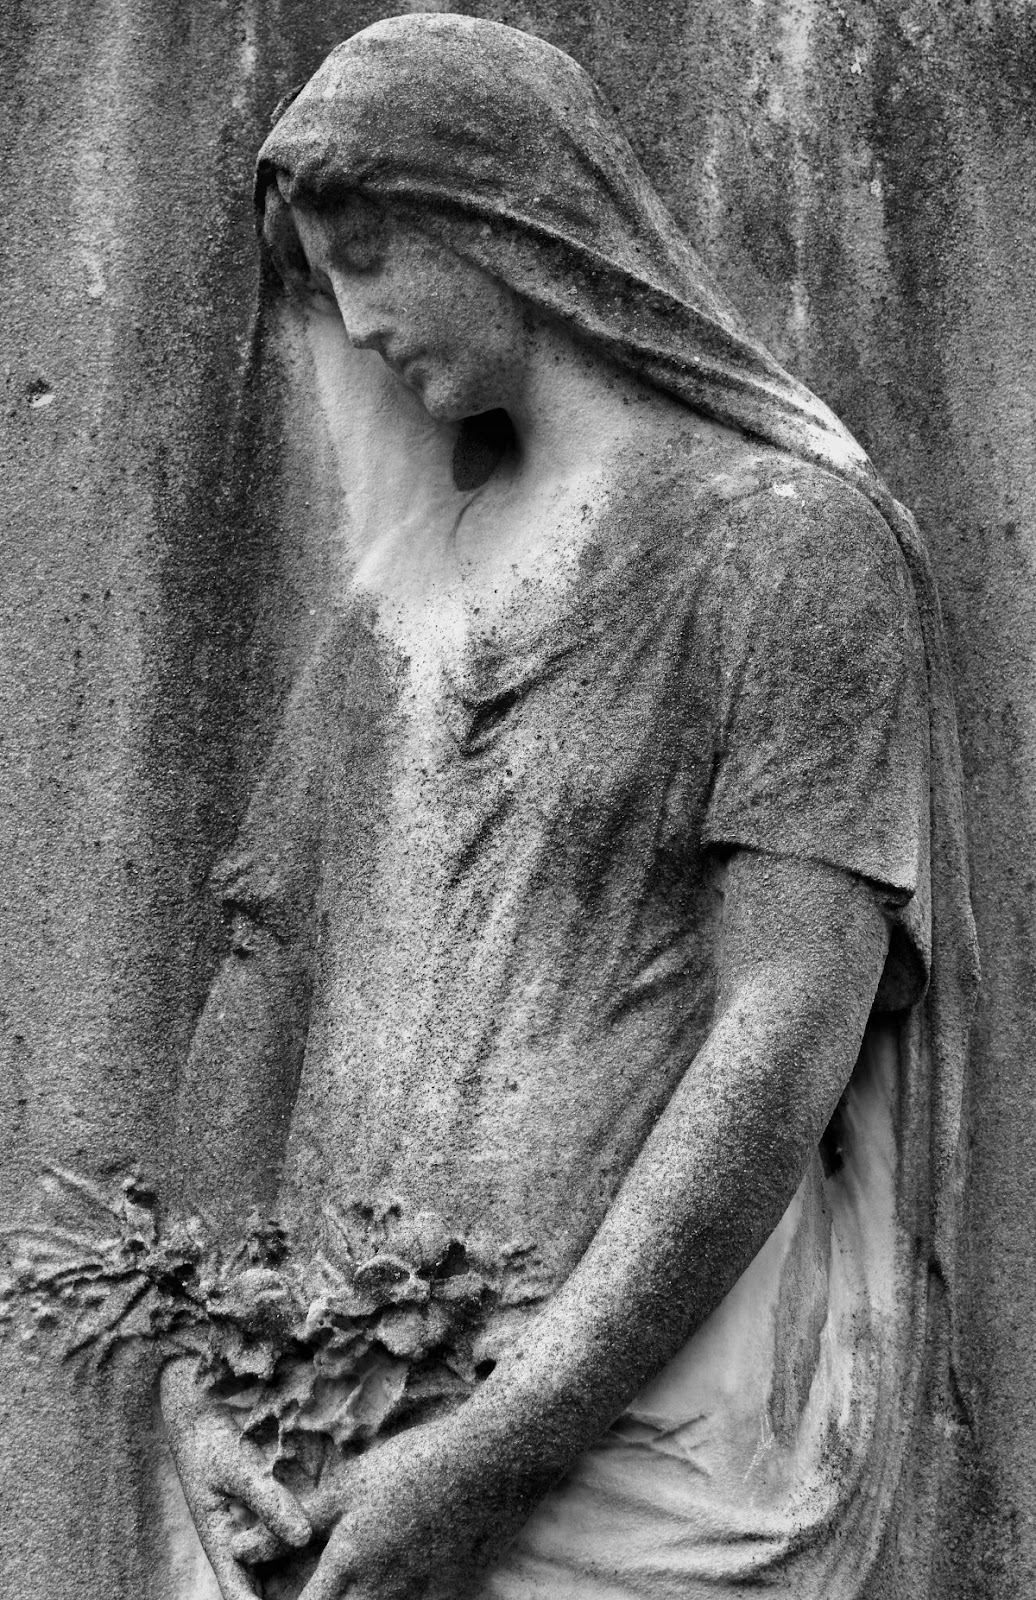 black and white monument statue portrait cemetery monochrome black white sculpture grey art sketch drawing temple head image grief mourning monochrome photography human positions art model figure drawing